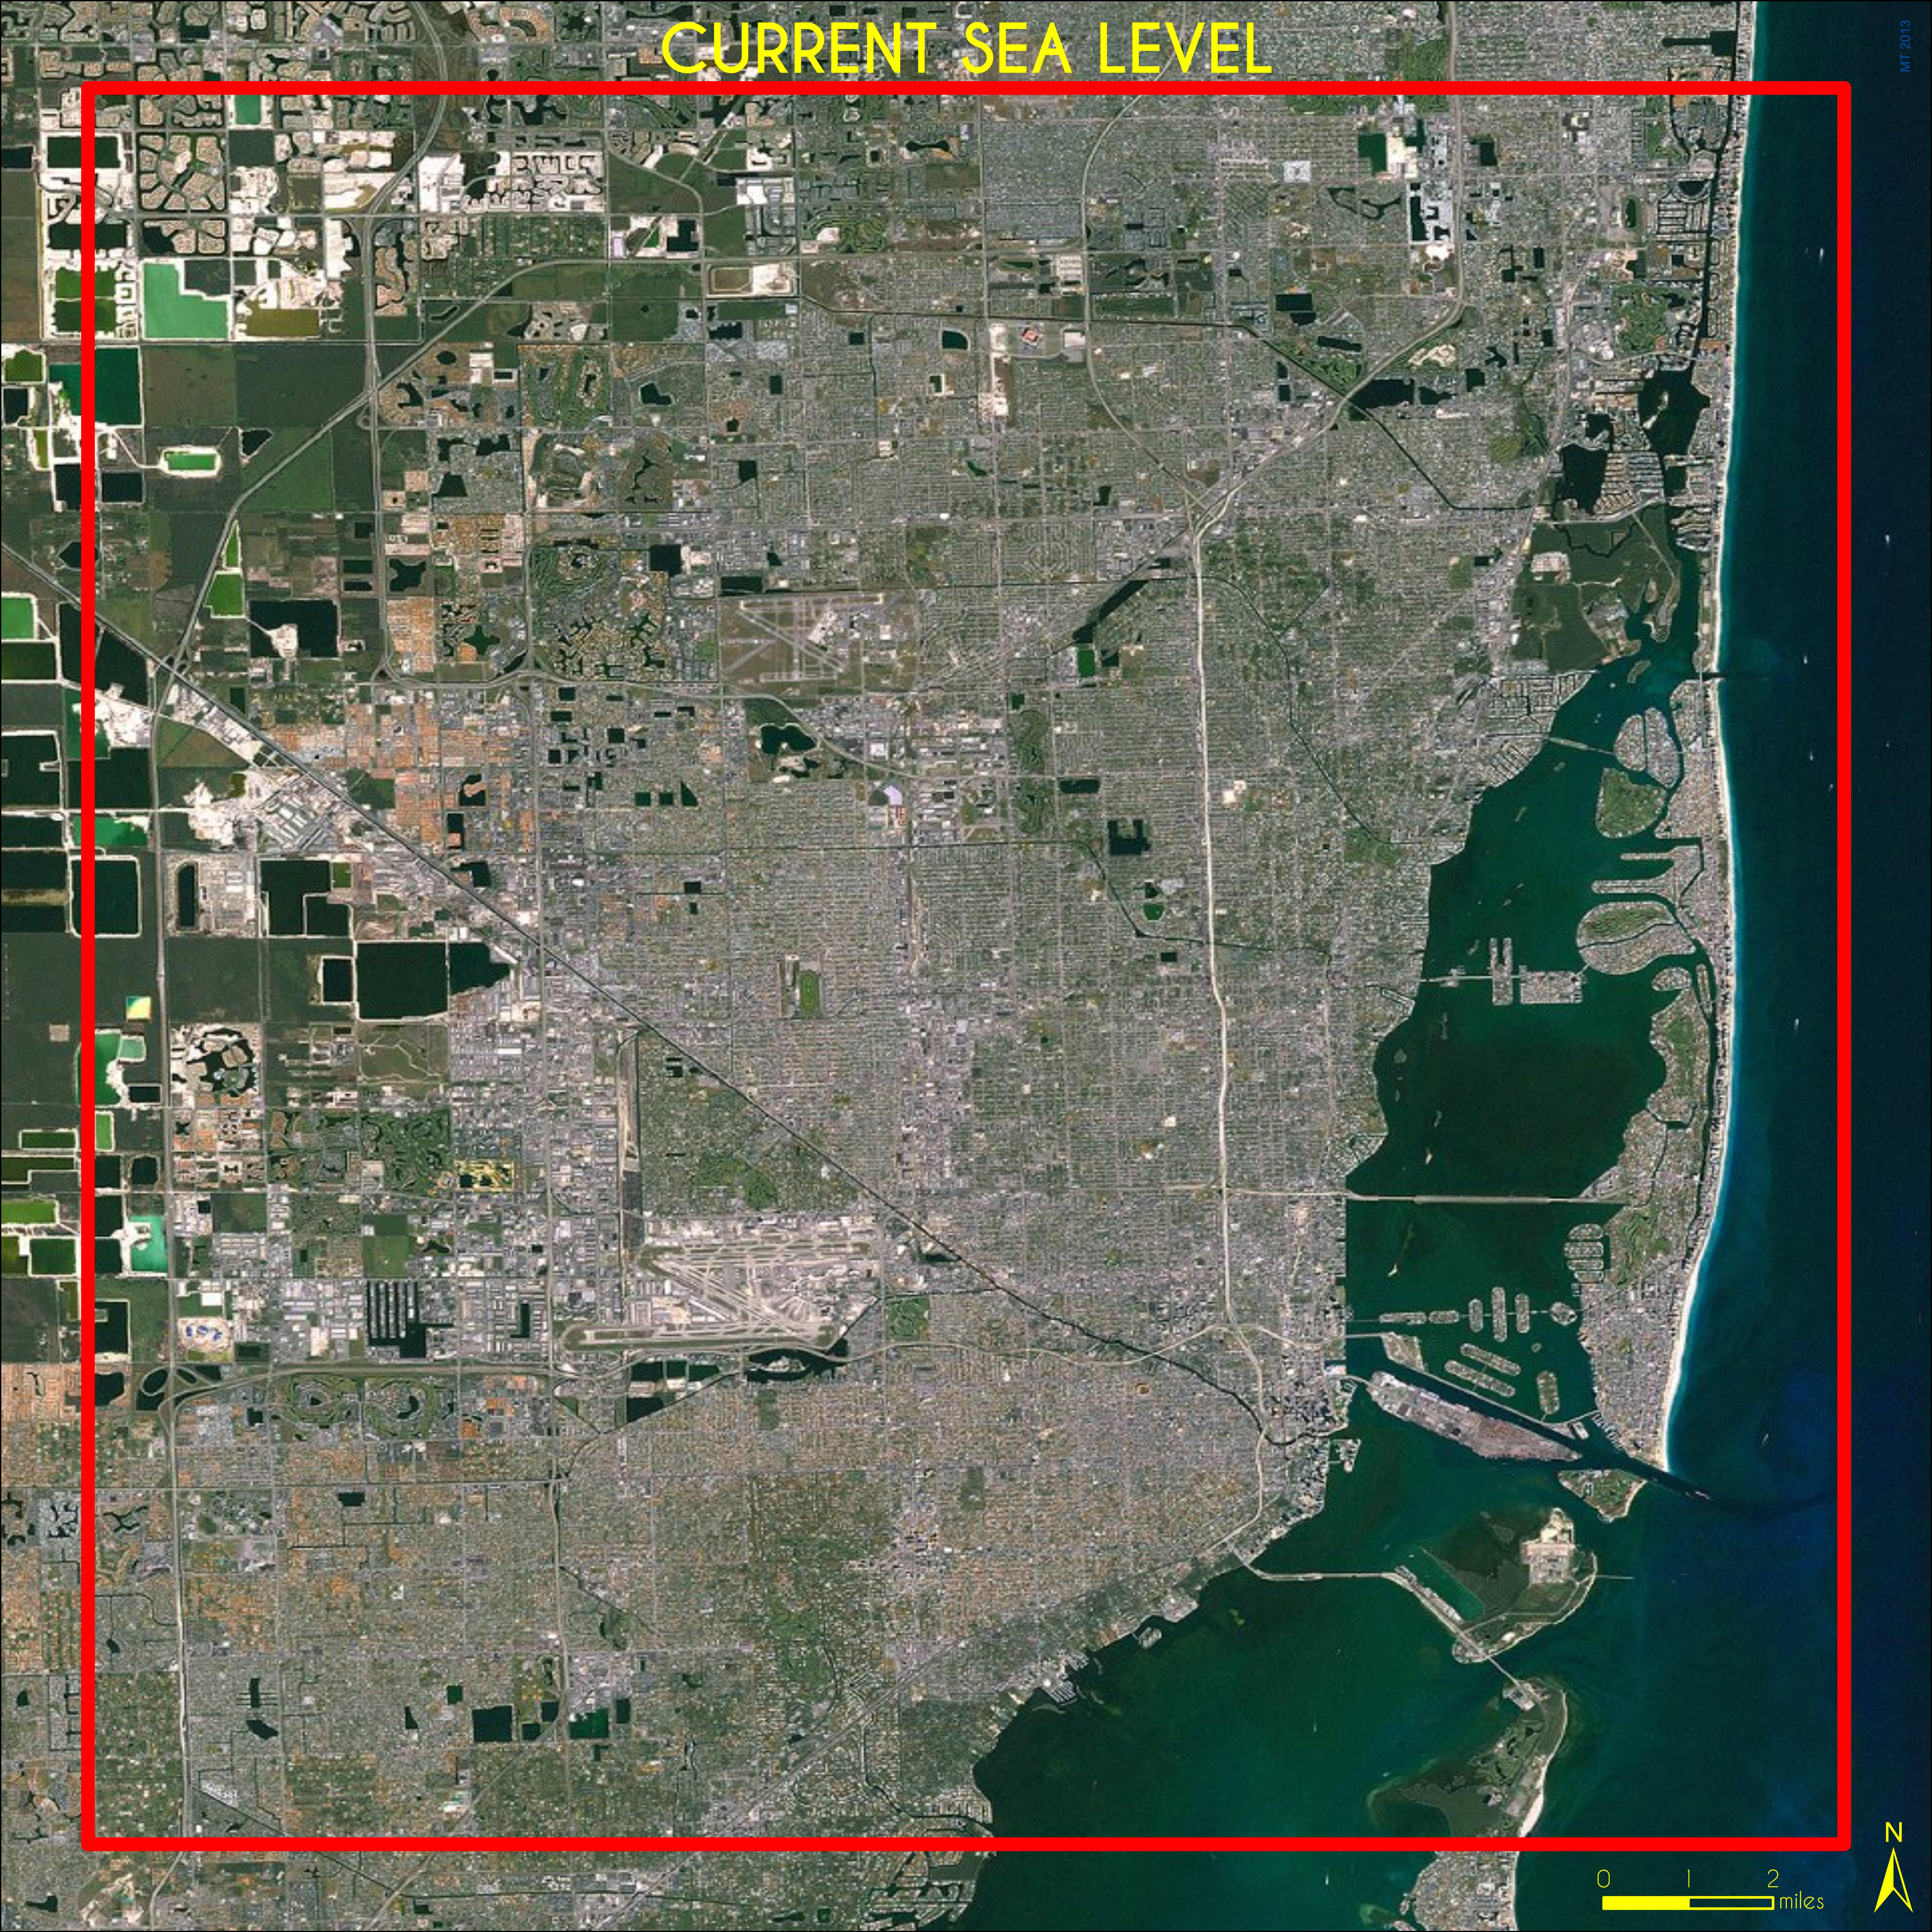 miami sea level rise map Maps Miami Sea Level Rise 1 6 Ft Miami Geographic miami sea level rise map